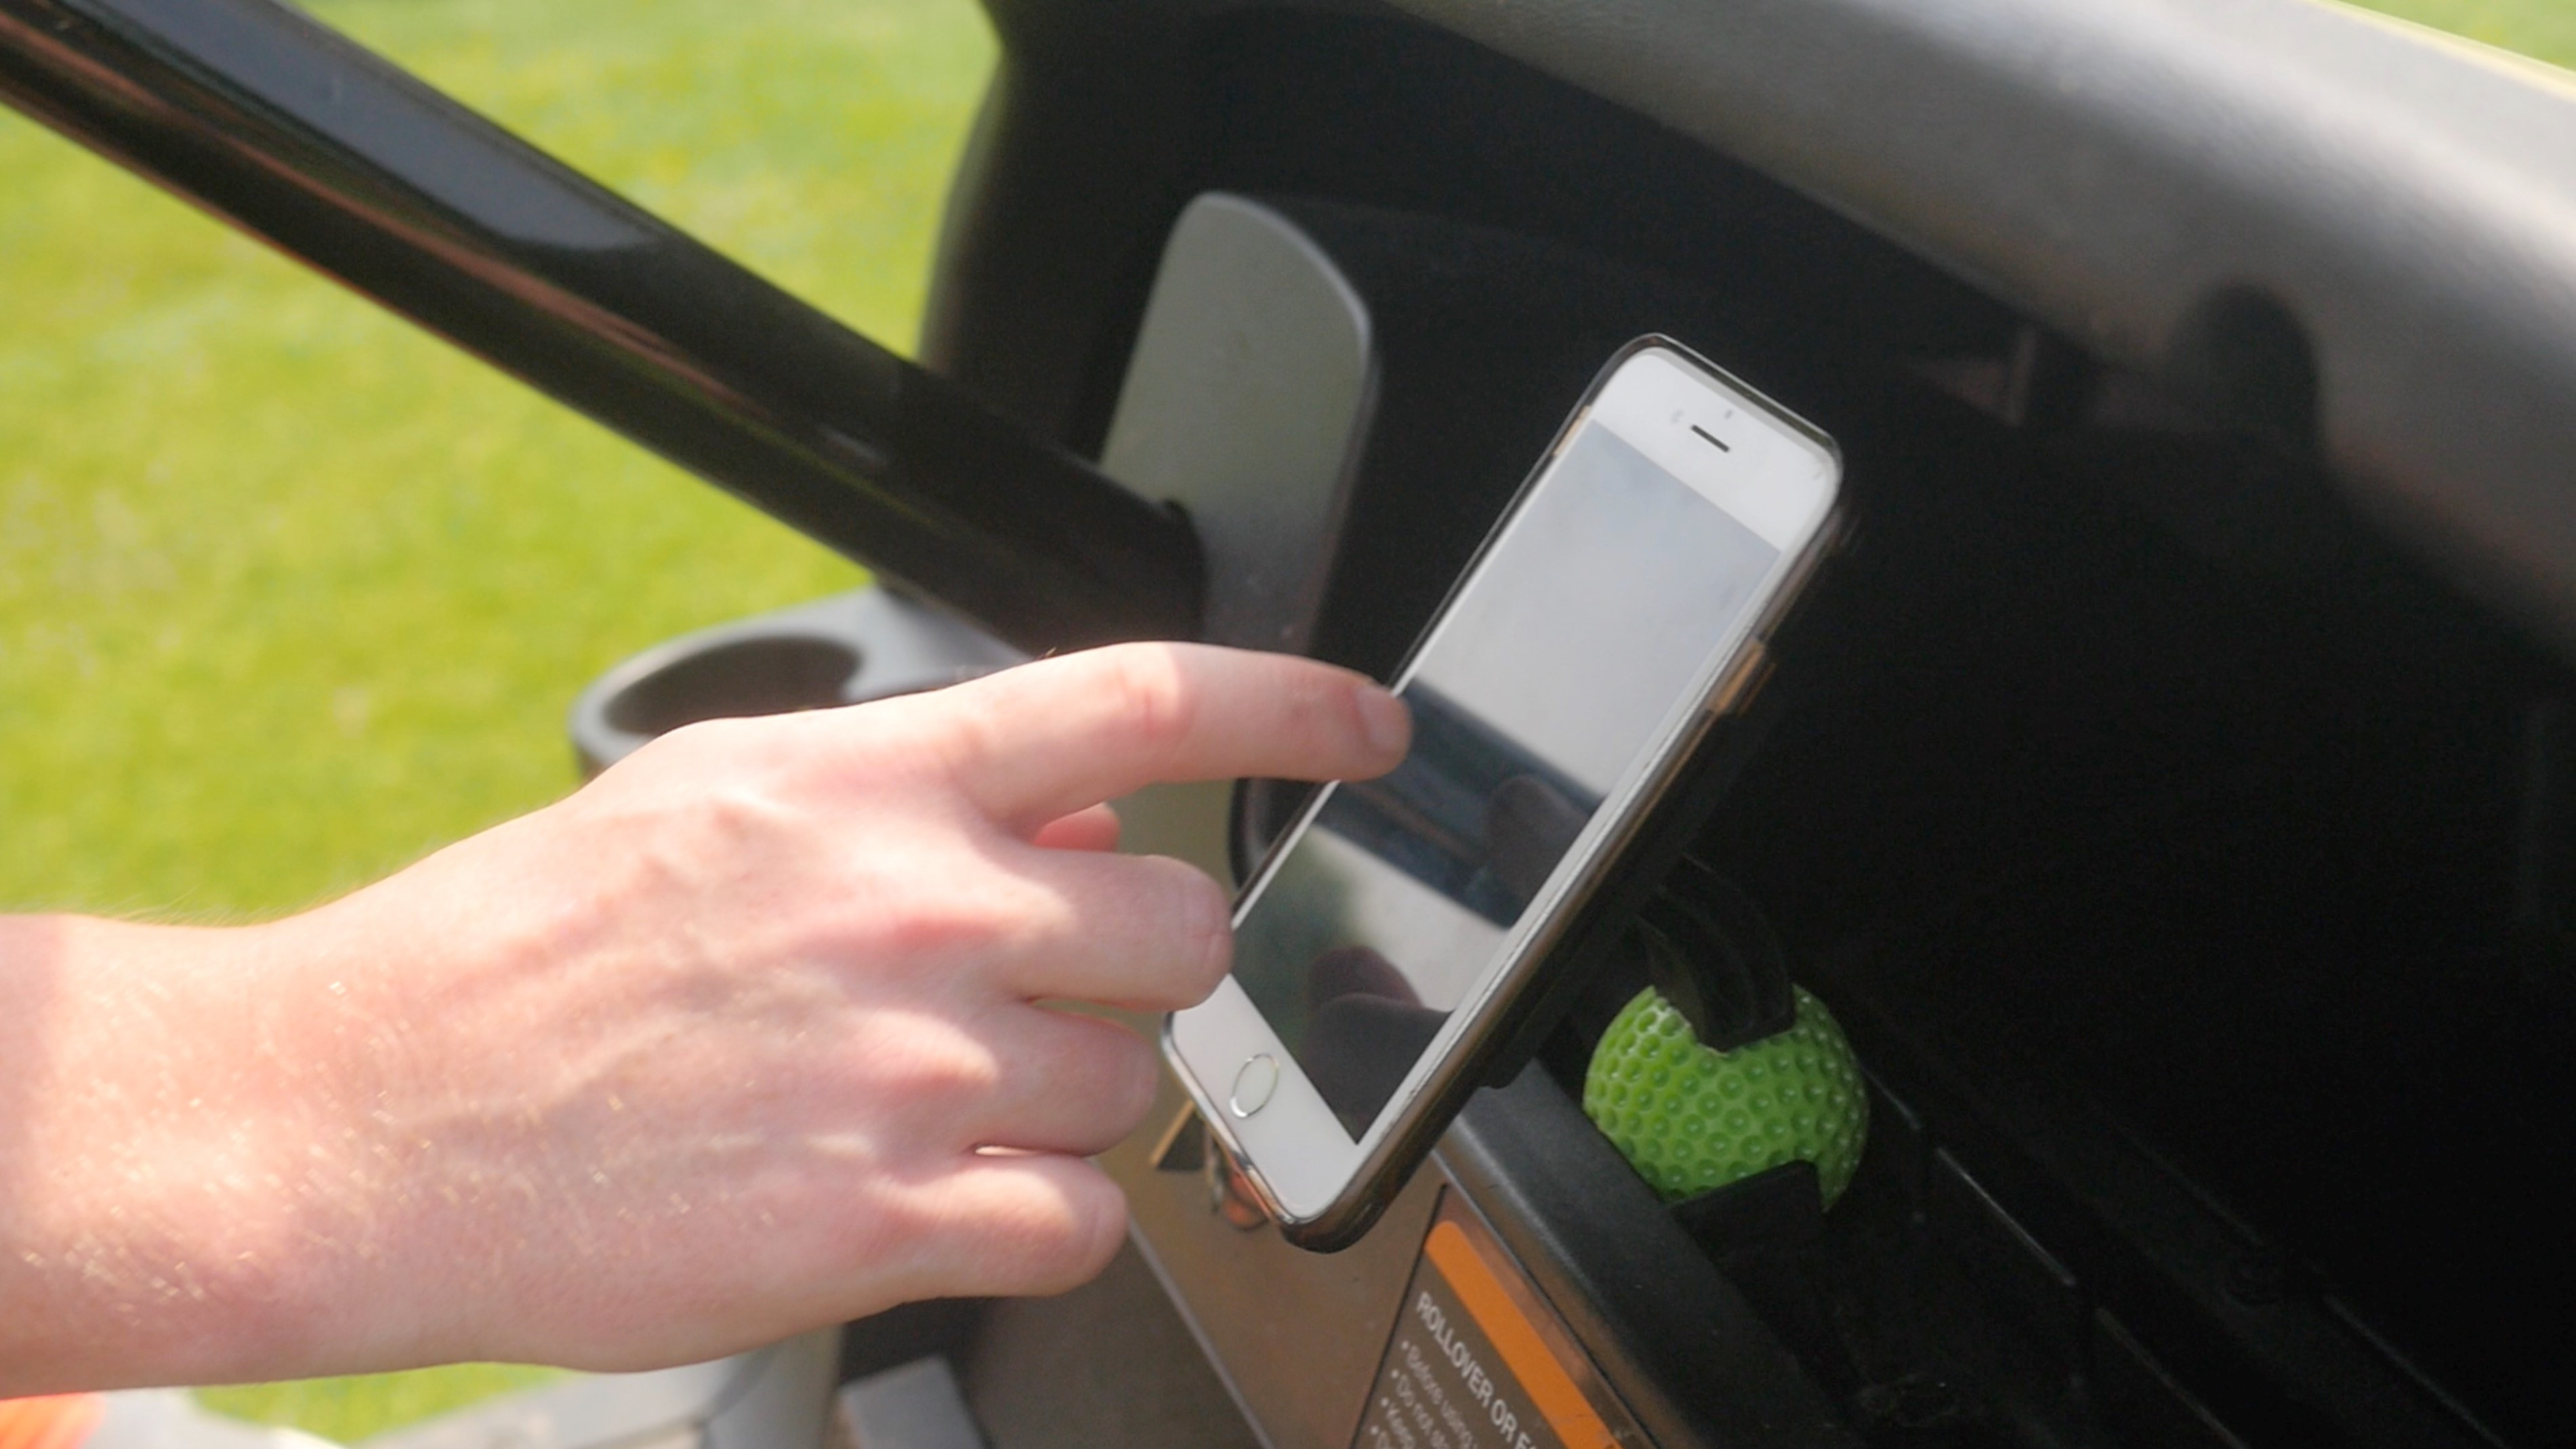 golf cart, golf lifestyle, phone accessories